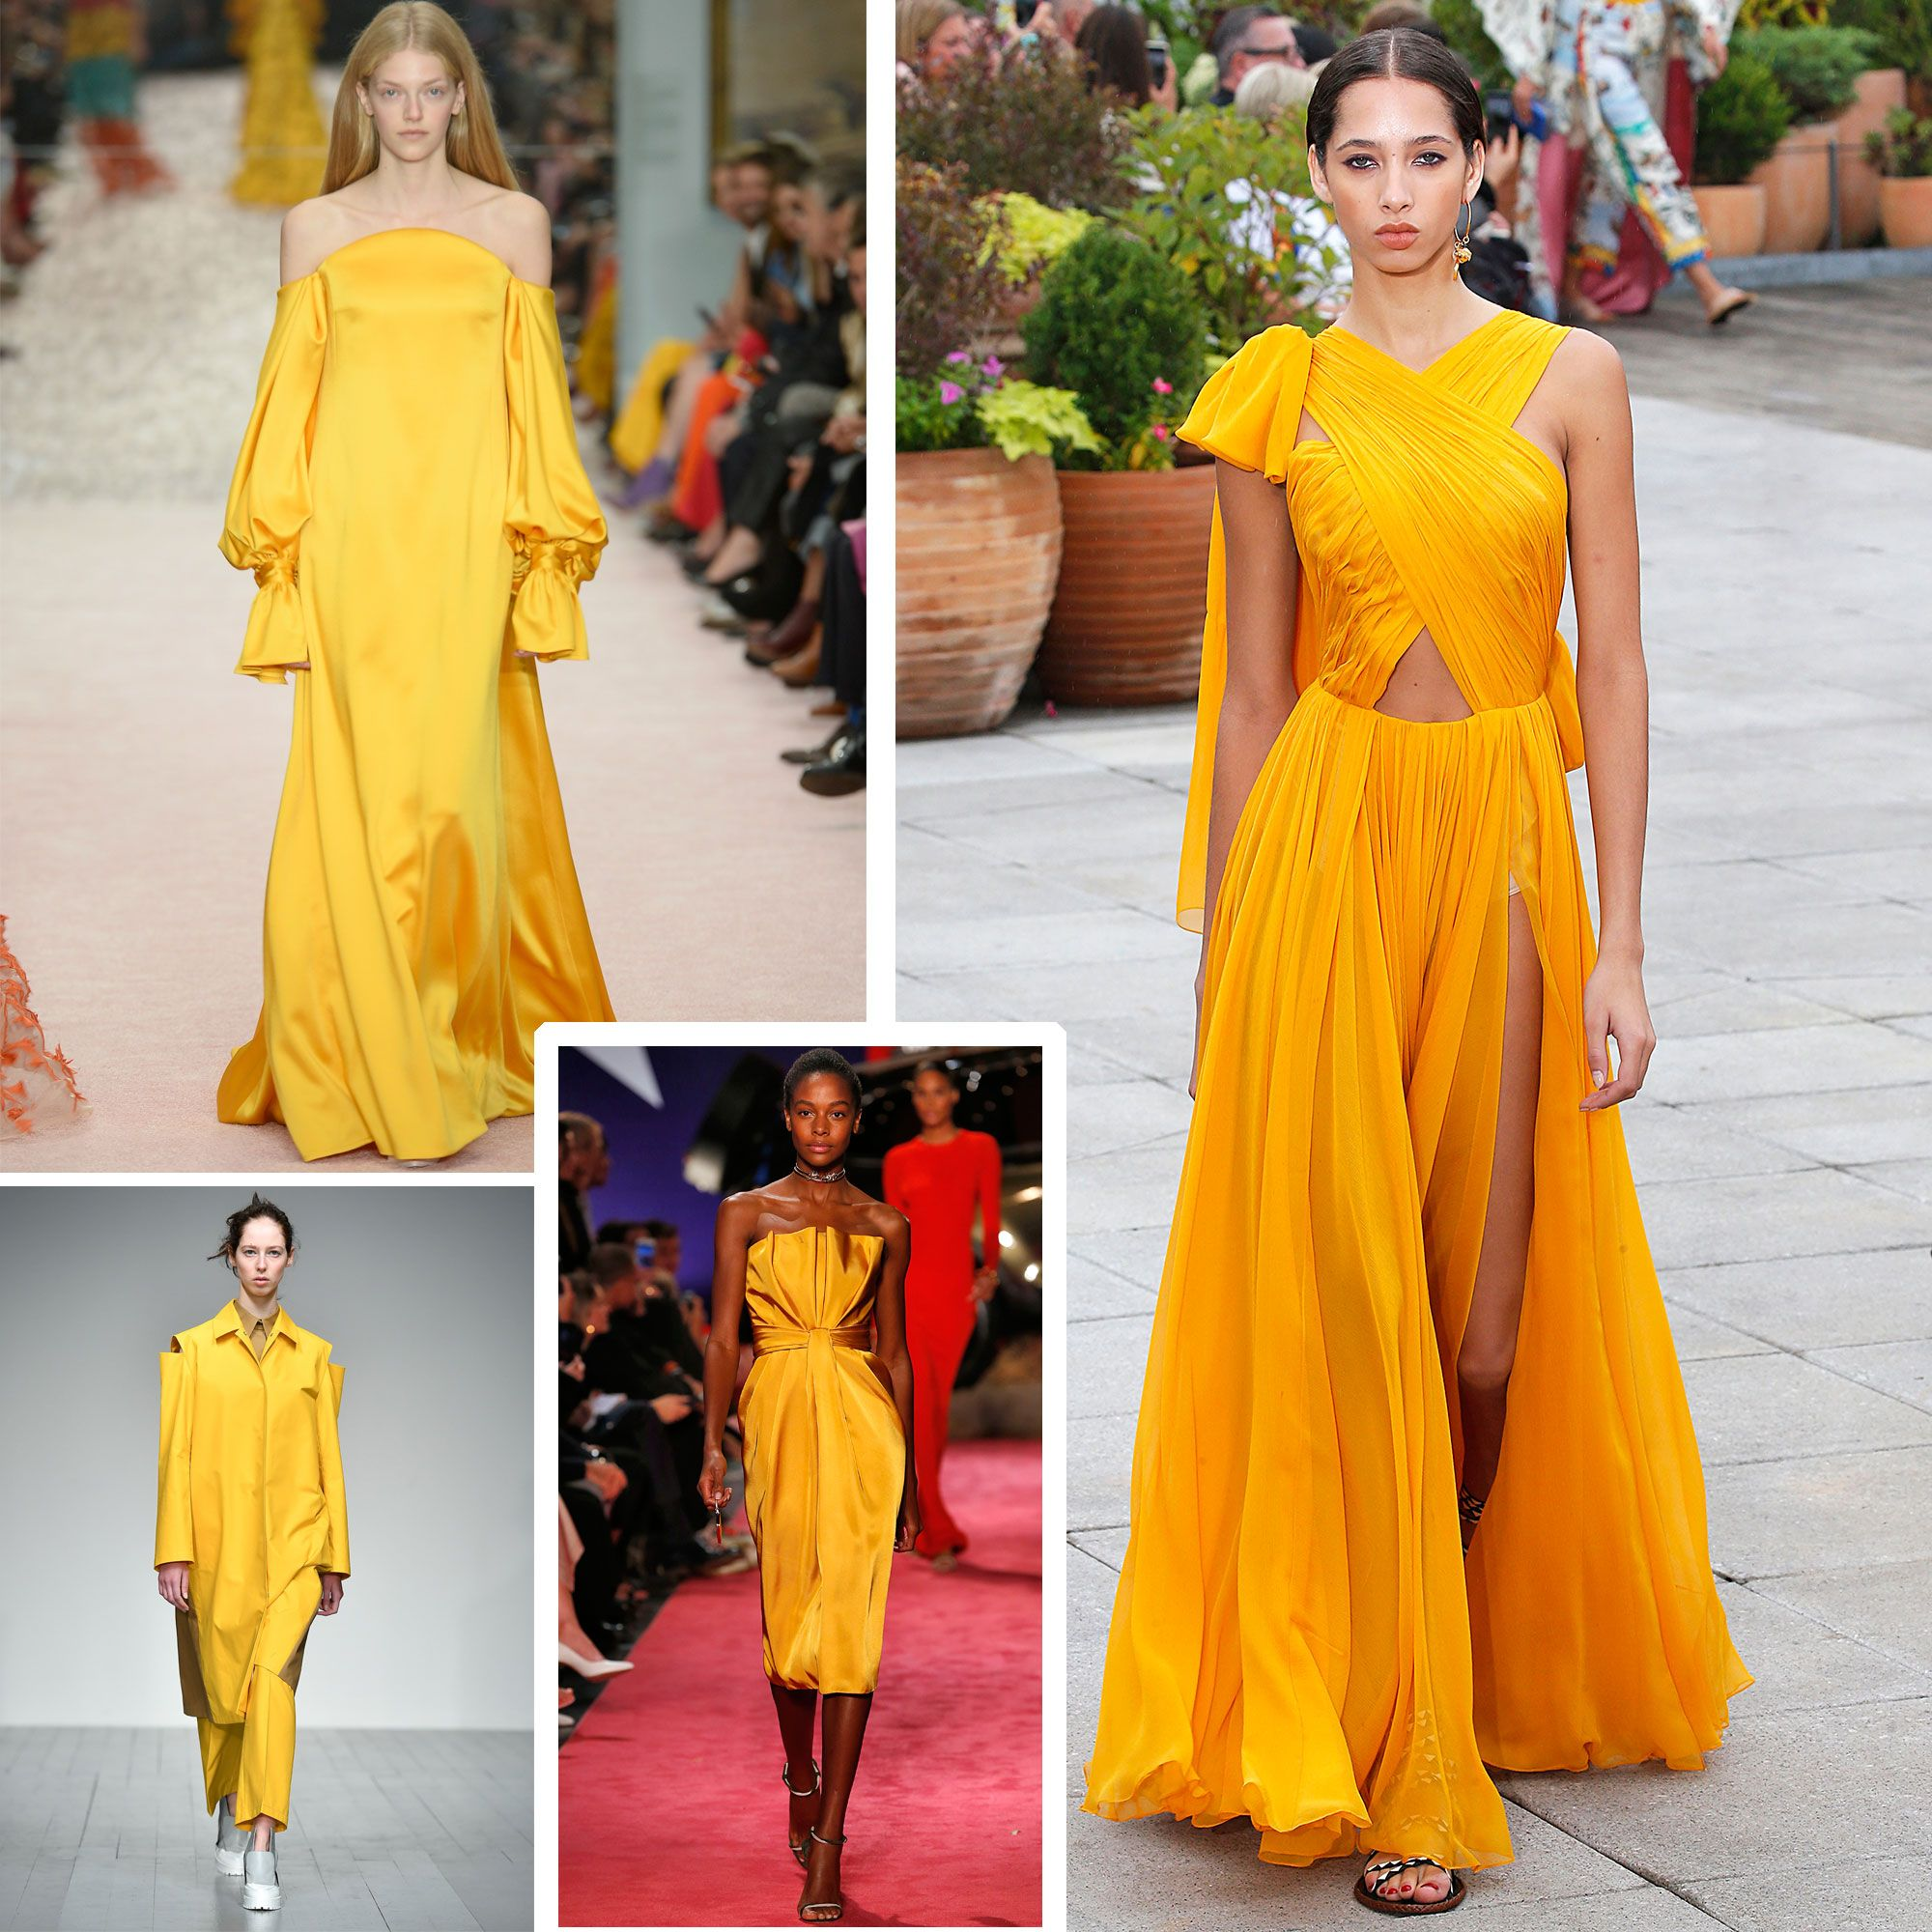 Spring/summer fashion trends 2019: Yellow